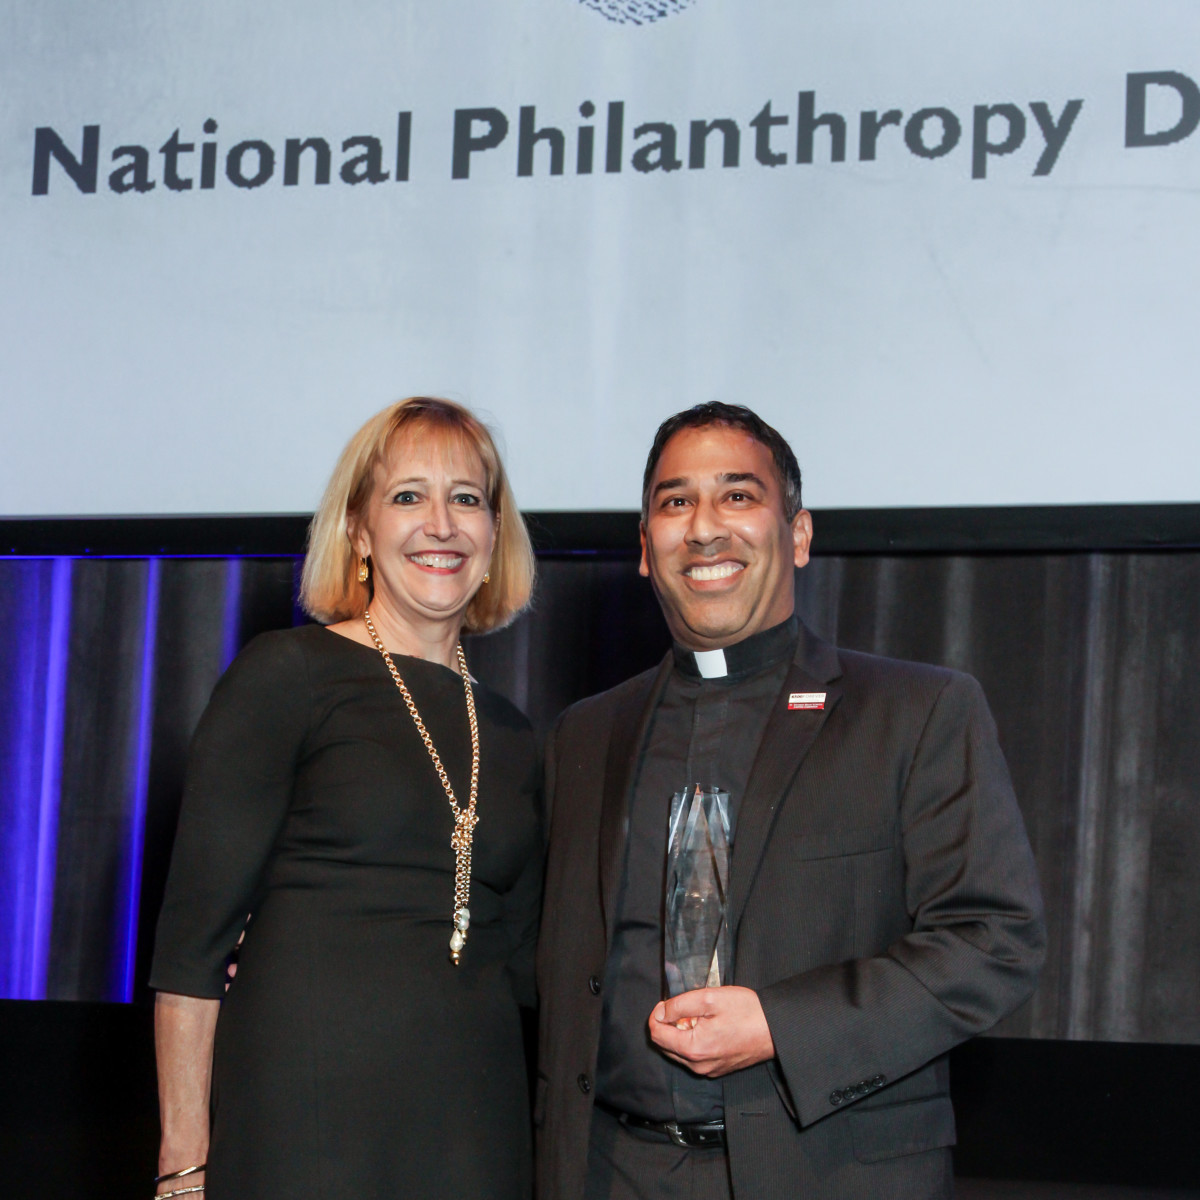 News, National Philanthropy Day Awards, Dec. 2015, Kim Sterling, the Rev. Kevin Storey